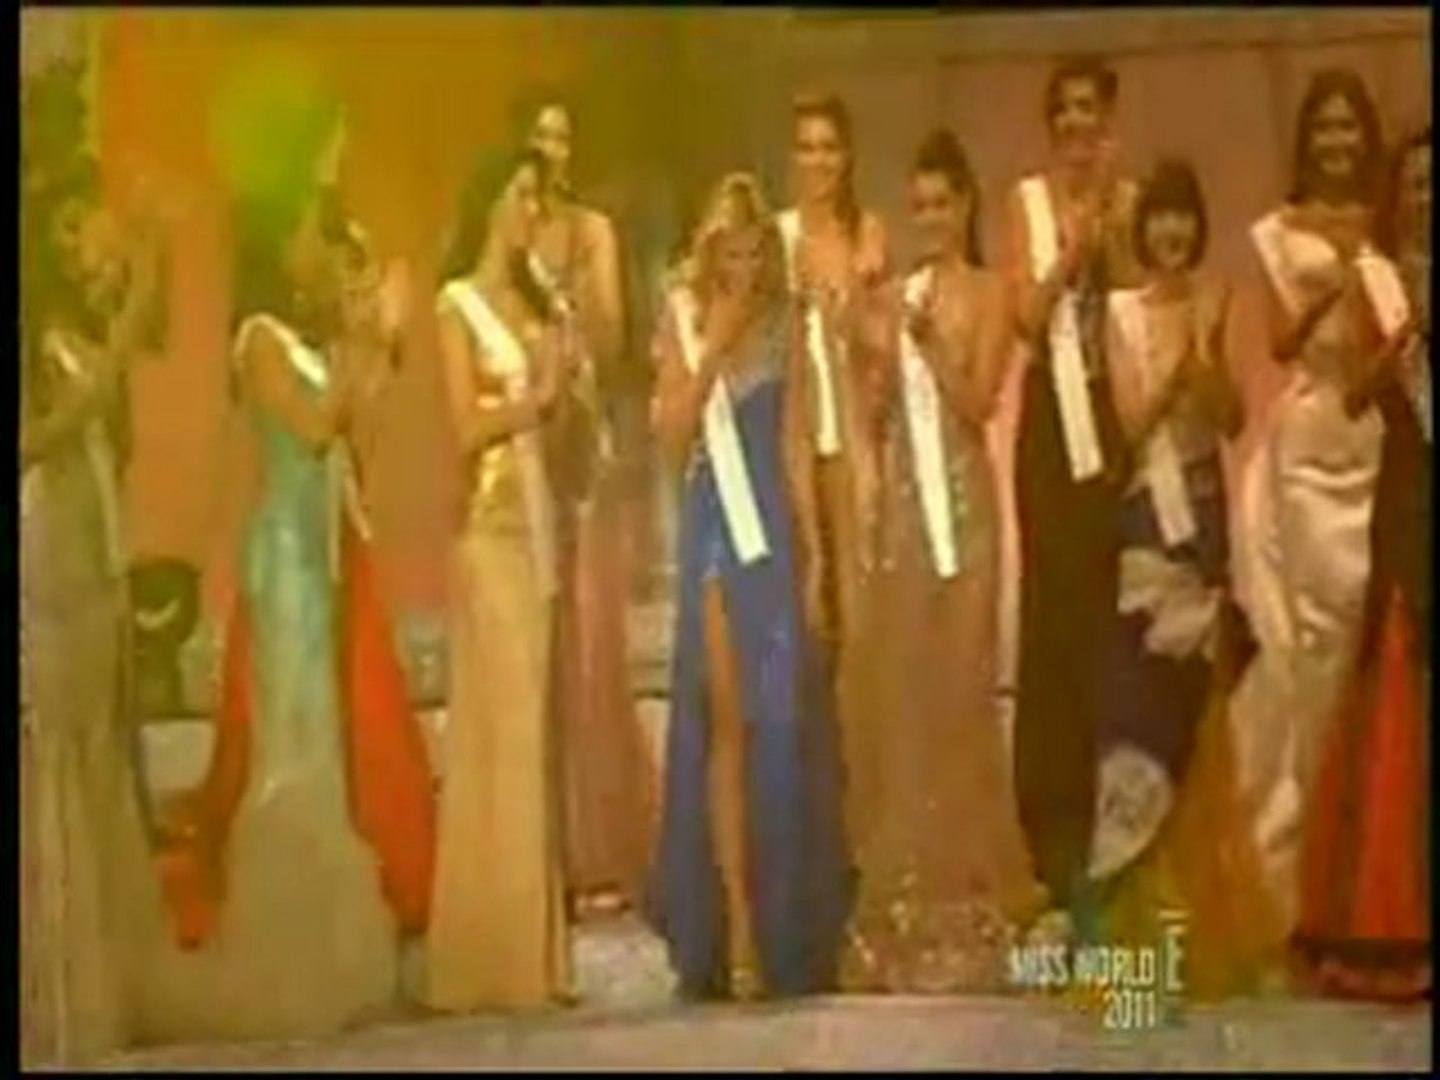 Miss world 2011 Live From London 6th November 2011 Pt1